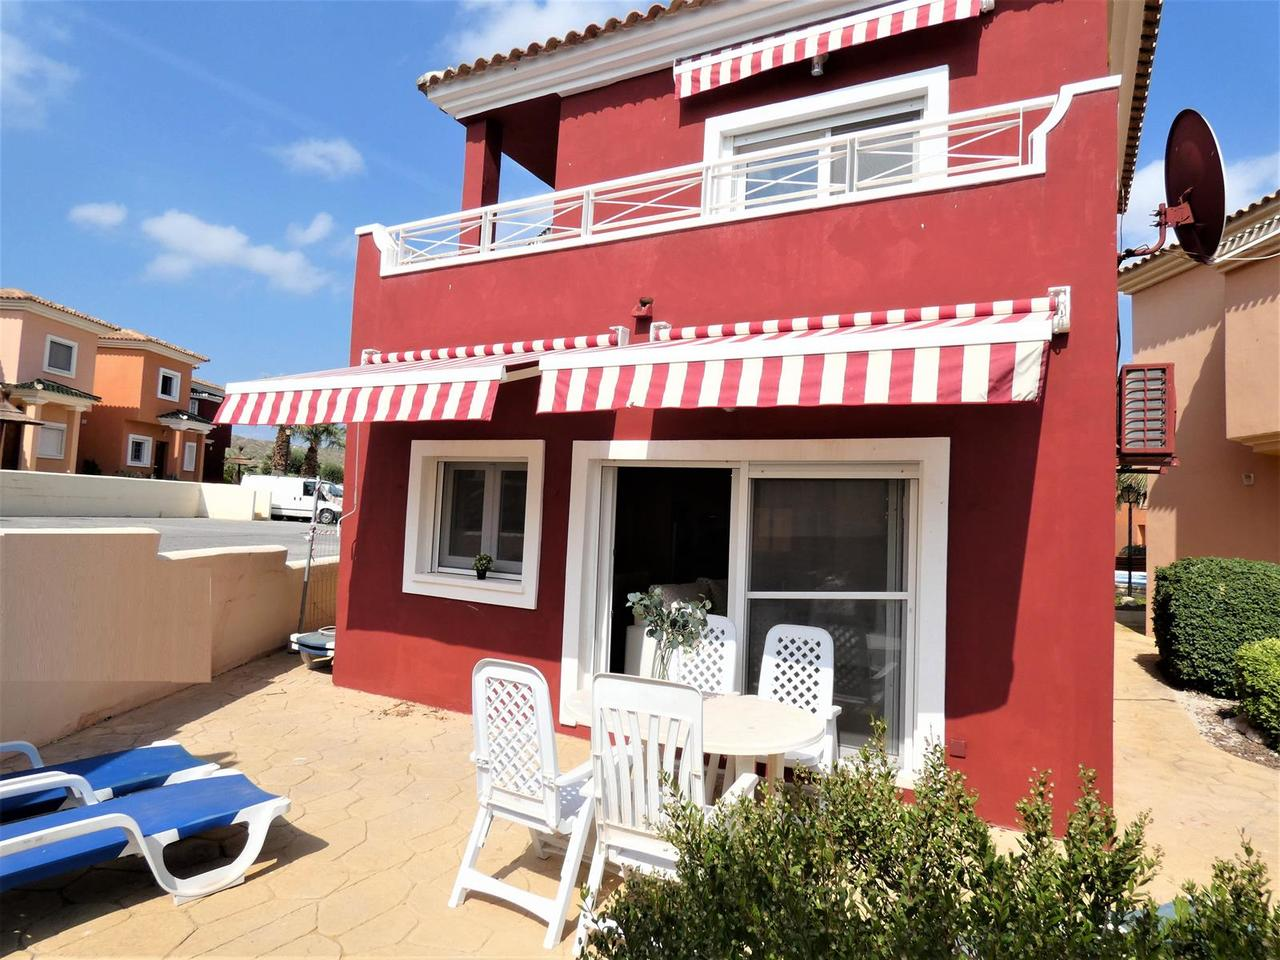 2 Bedroom, villa – Altaona Golf